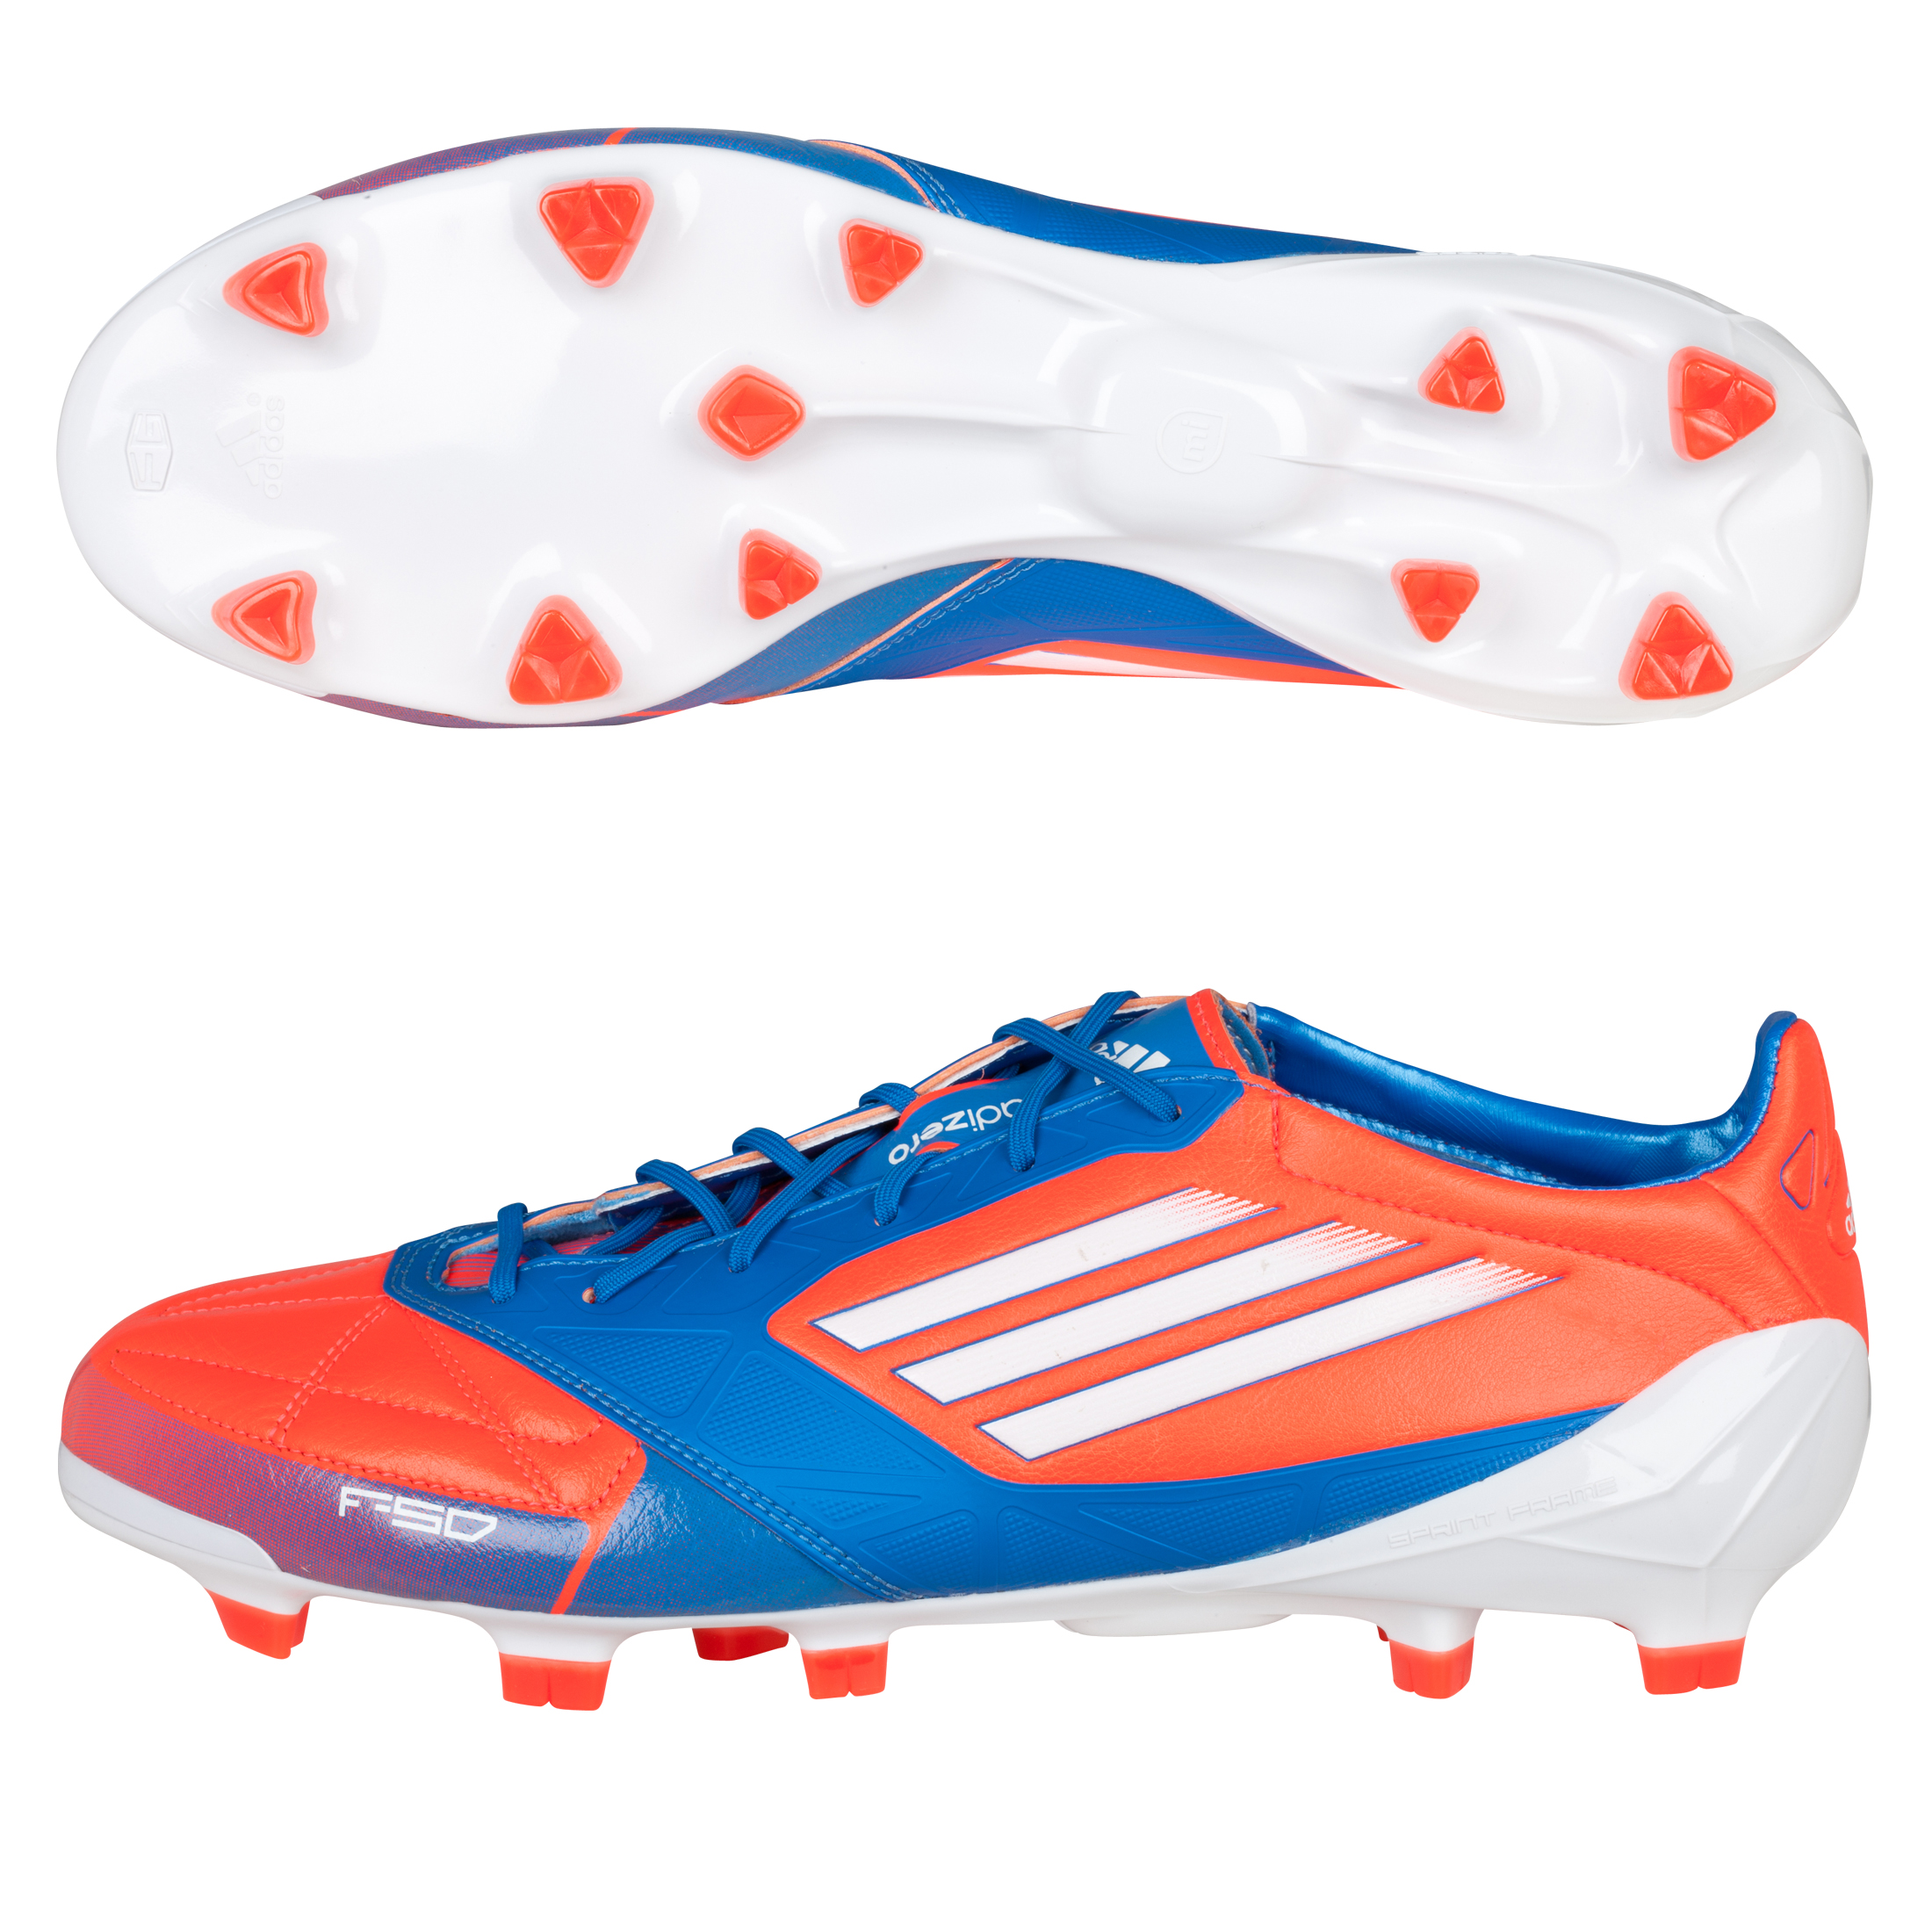 F50 Adizero TRX FG Leather Infrared/White/Bright Blue